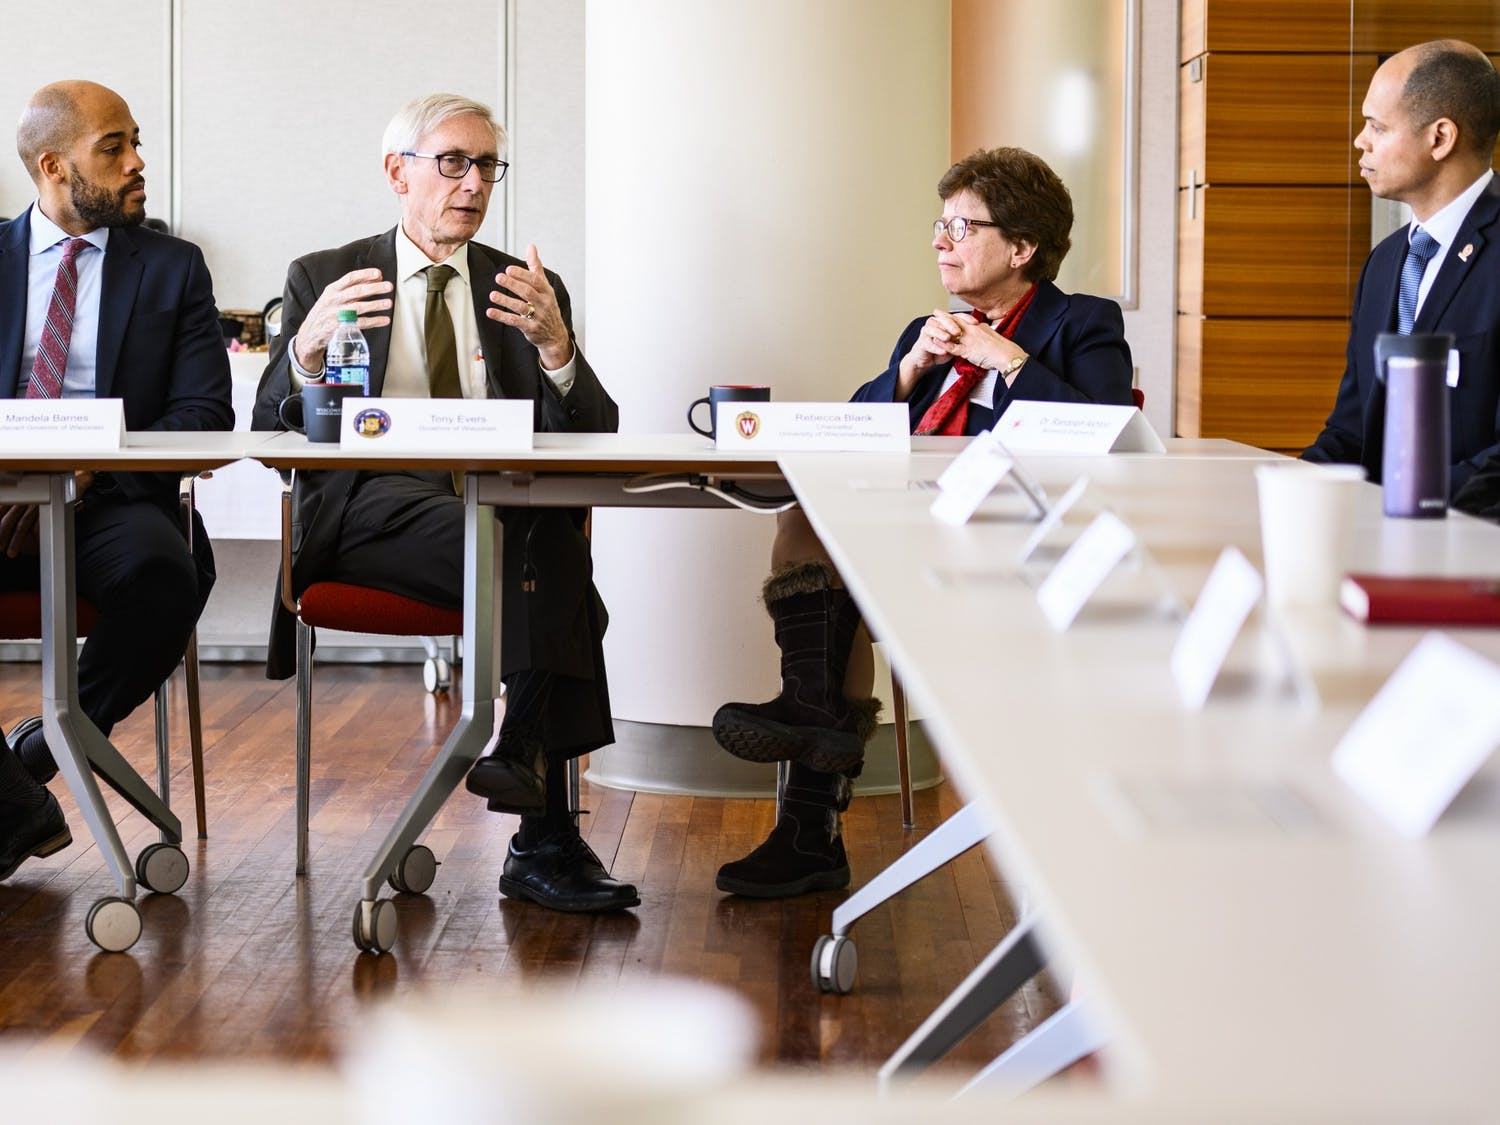 Wisconsin Gov. Tony Evers, at left of center, flanked by Lt. Gov. Mandela Barnes and UW-Madison Chancellor Rebecca Blank, meets with faculty, staff and student researchers in the Wisconsin Institute for Discovery during Evers's tour of the Discovery Building at the University of Wisconsin-Madison on March 5, 2019. (Photo by Jeff Miller / UW-Madison)